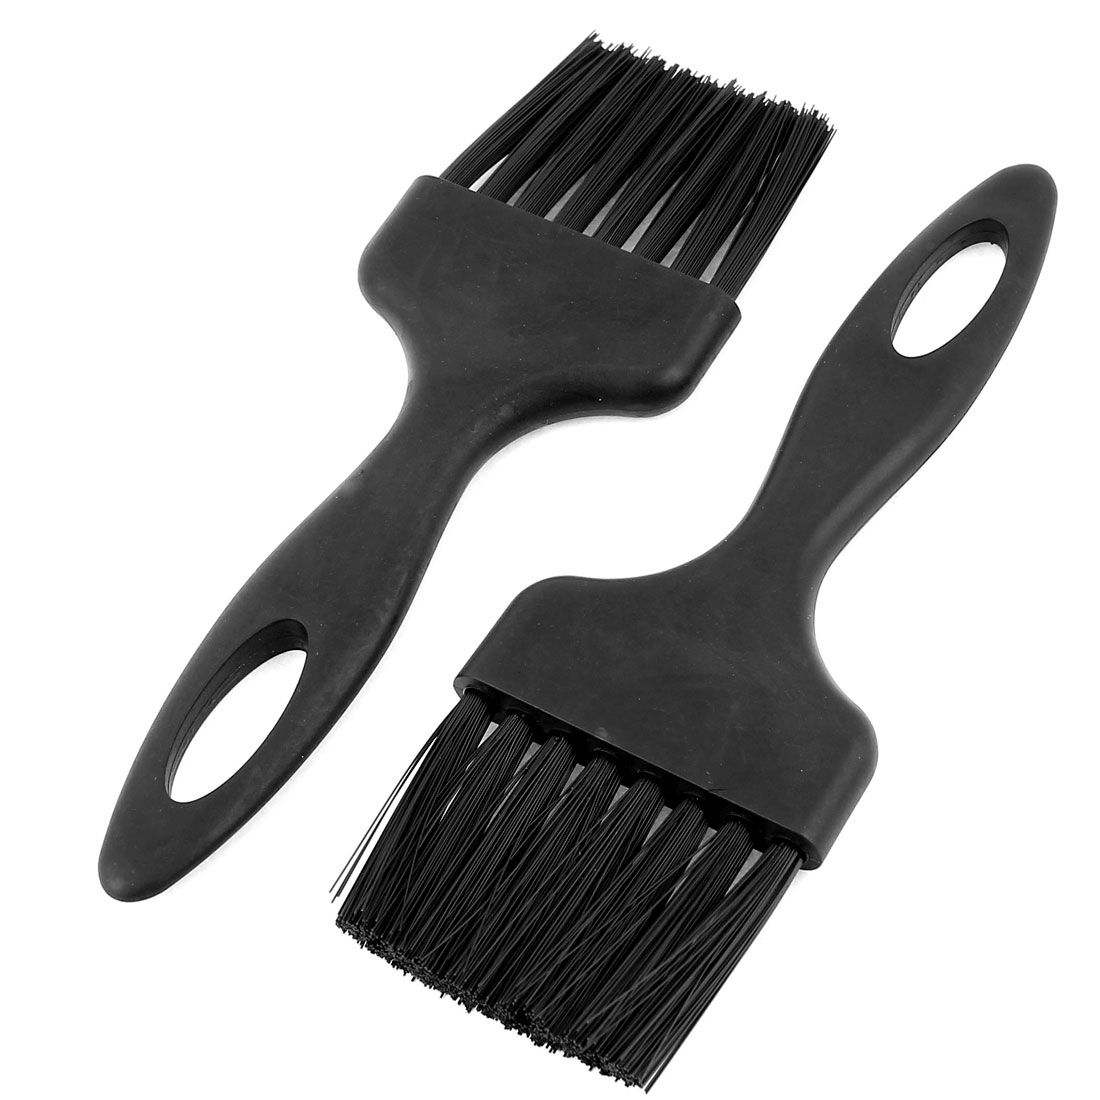 2 Pcs 5.4 x 0.5cm Flat Handle Anti Static ESD Cleaning Brush Black